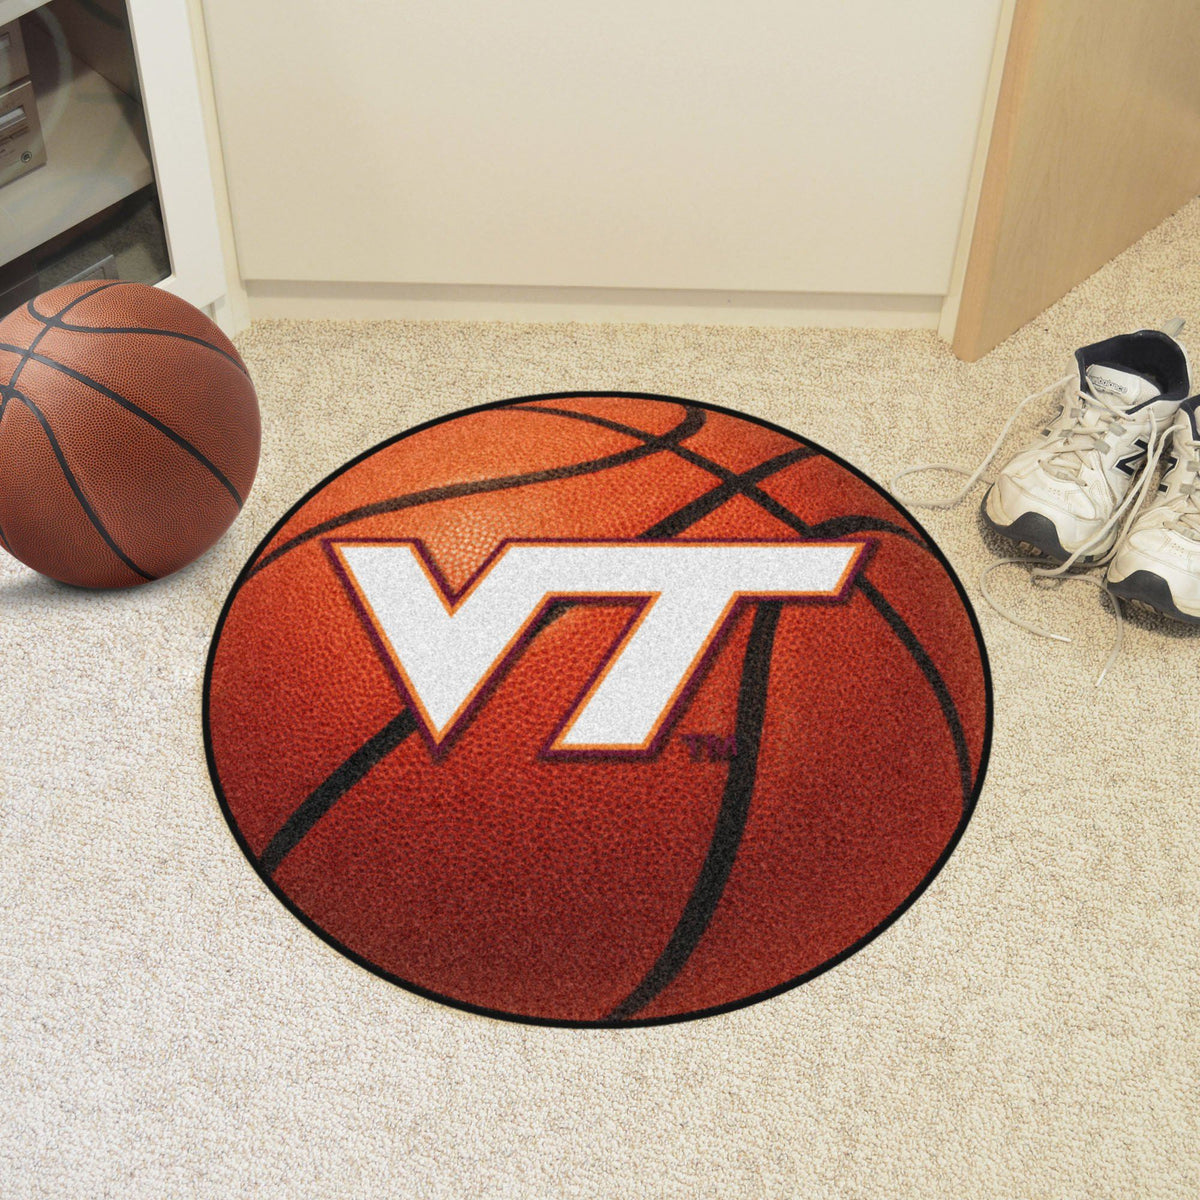 Collegiate - Basketball Mat: T - Z Collegiate Mats, Rectangular Mats, Basketball Mat, Collegiate, Home Fan Mats Virginia Tech